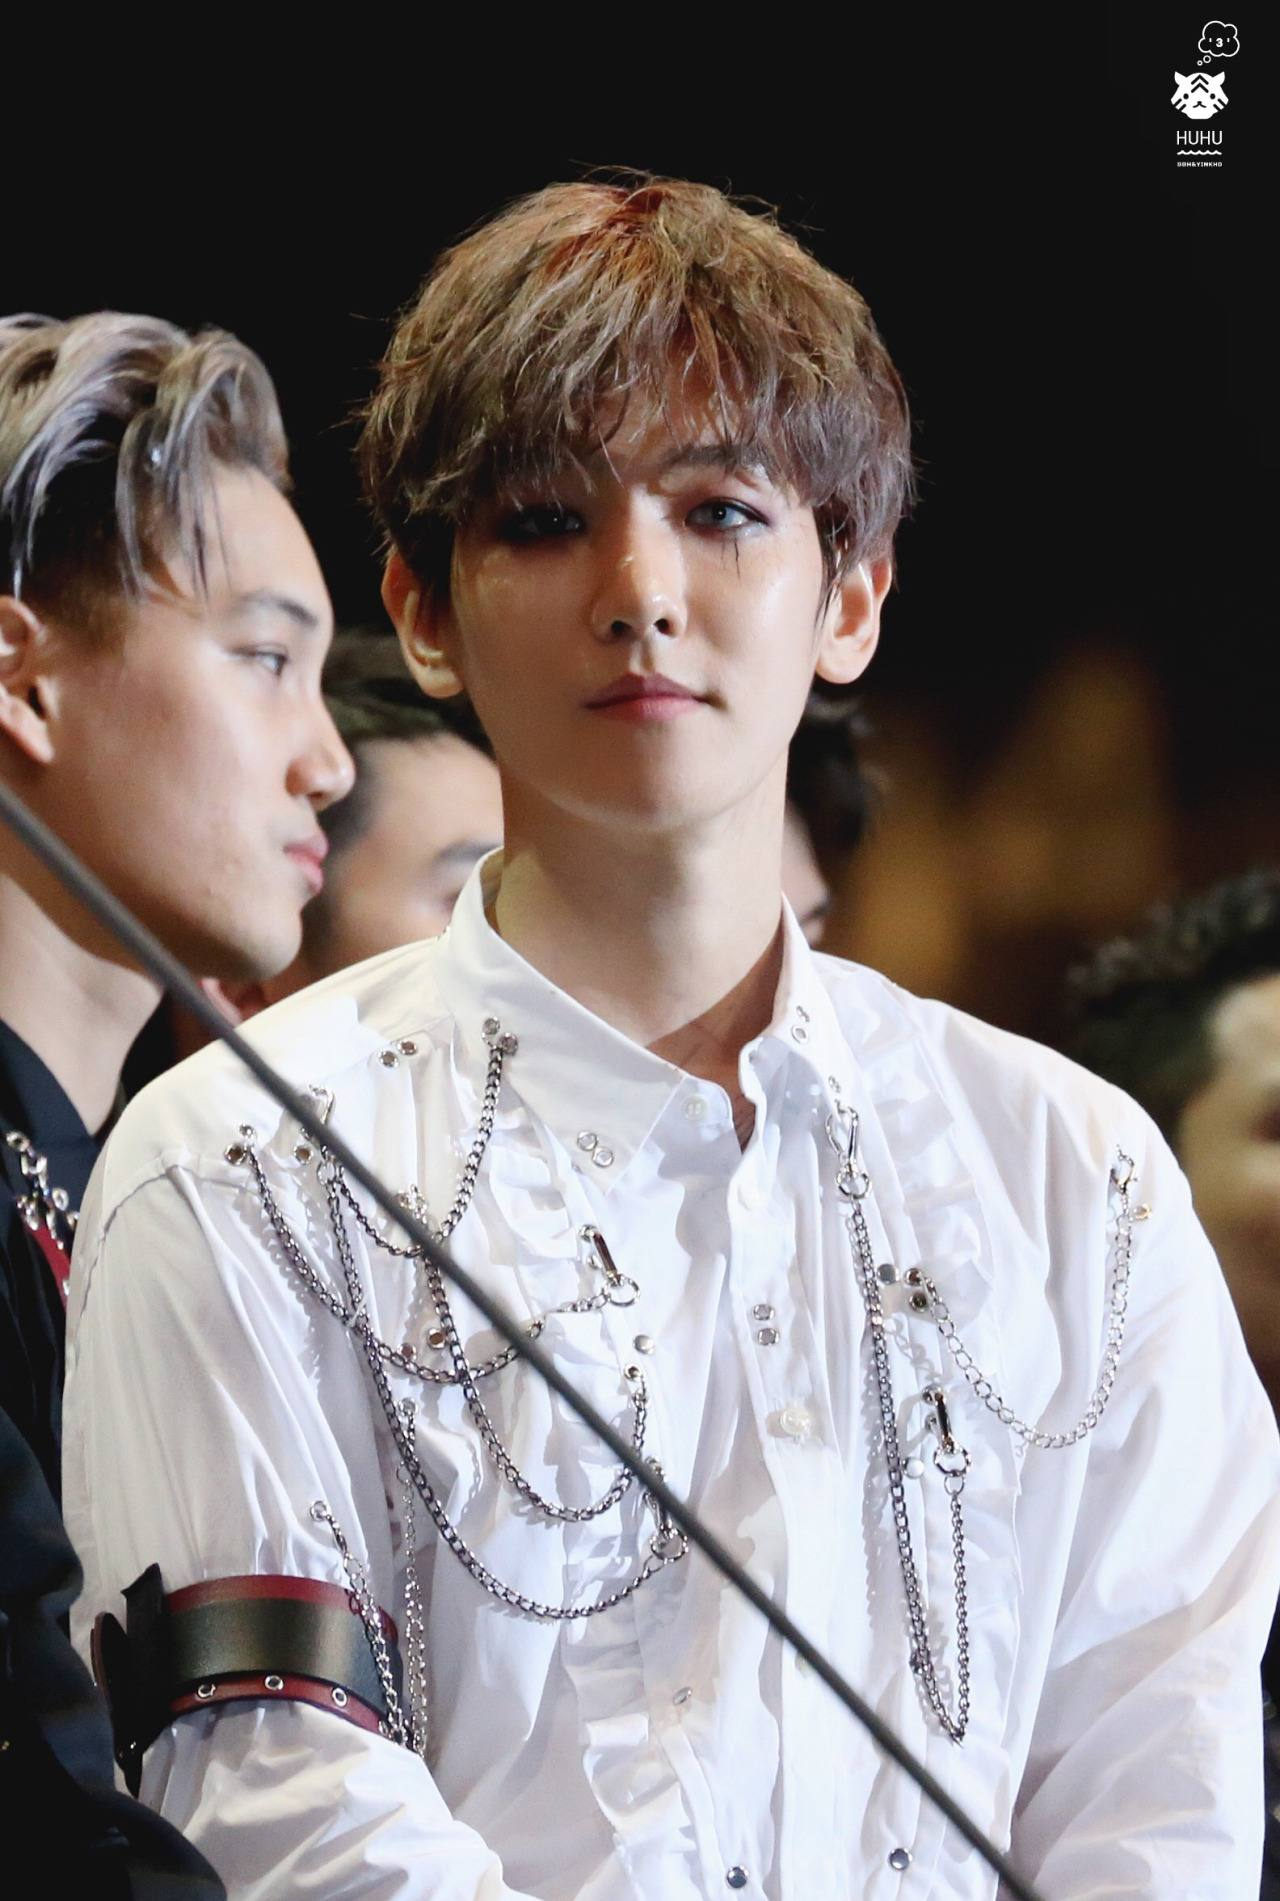 7 Amazing Photos Of Baekhyun S Quot Vampire Prince Quot Look From Mama